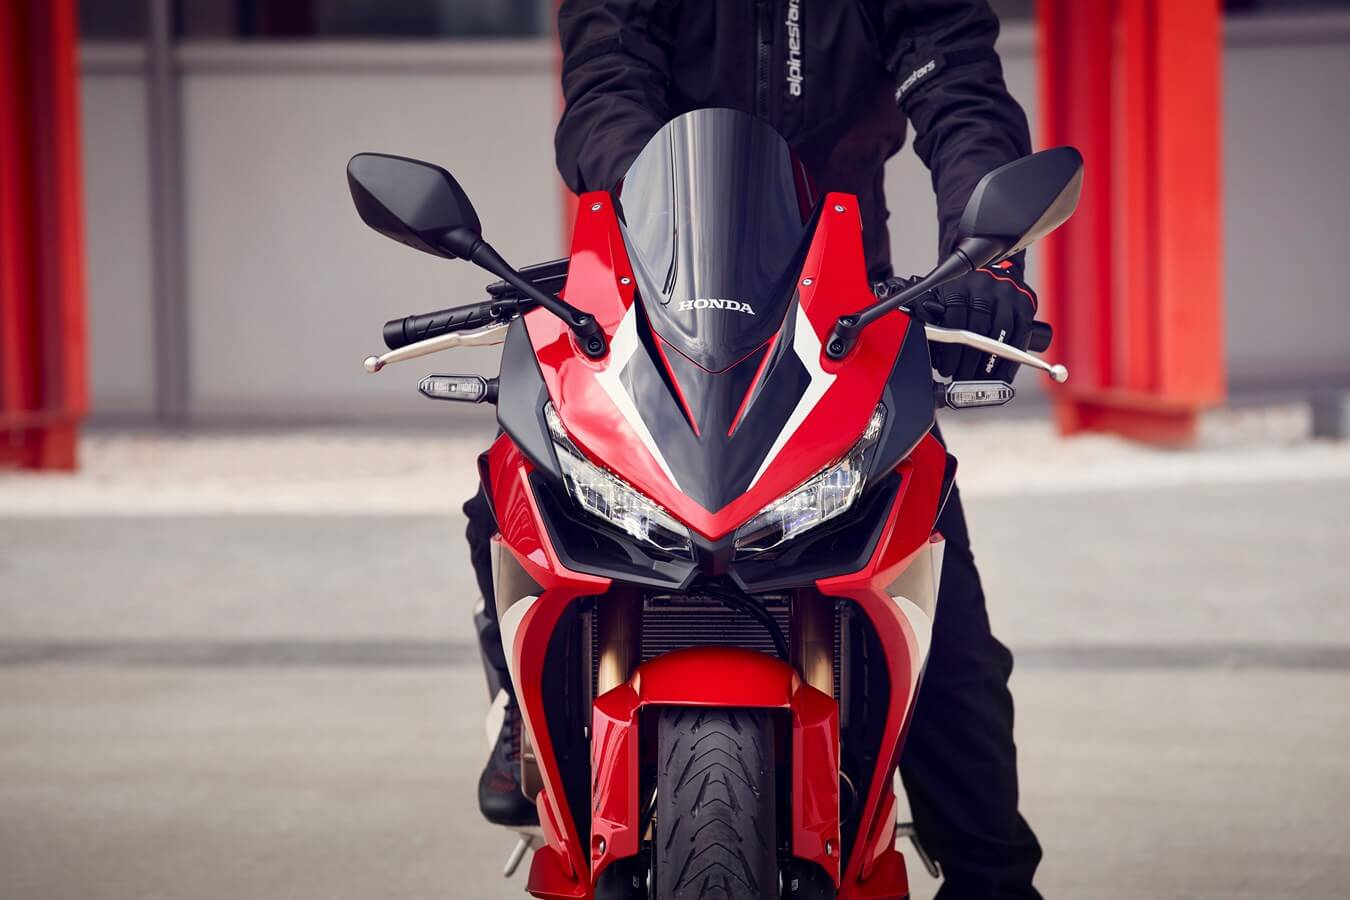 2022 Honda CBR500R Review: Specs, Changes Explained, Colors, Price + More! | 2022 CBR 500 R Sport Bike / Motorcycle Buyer